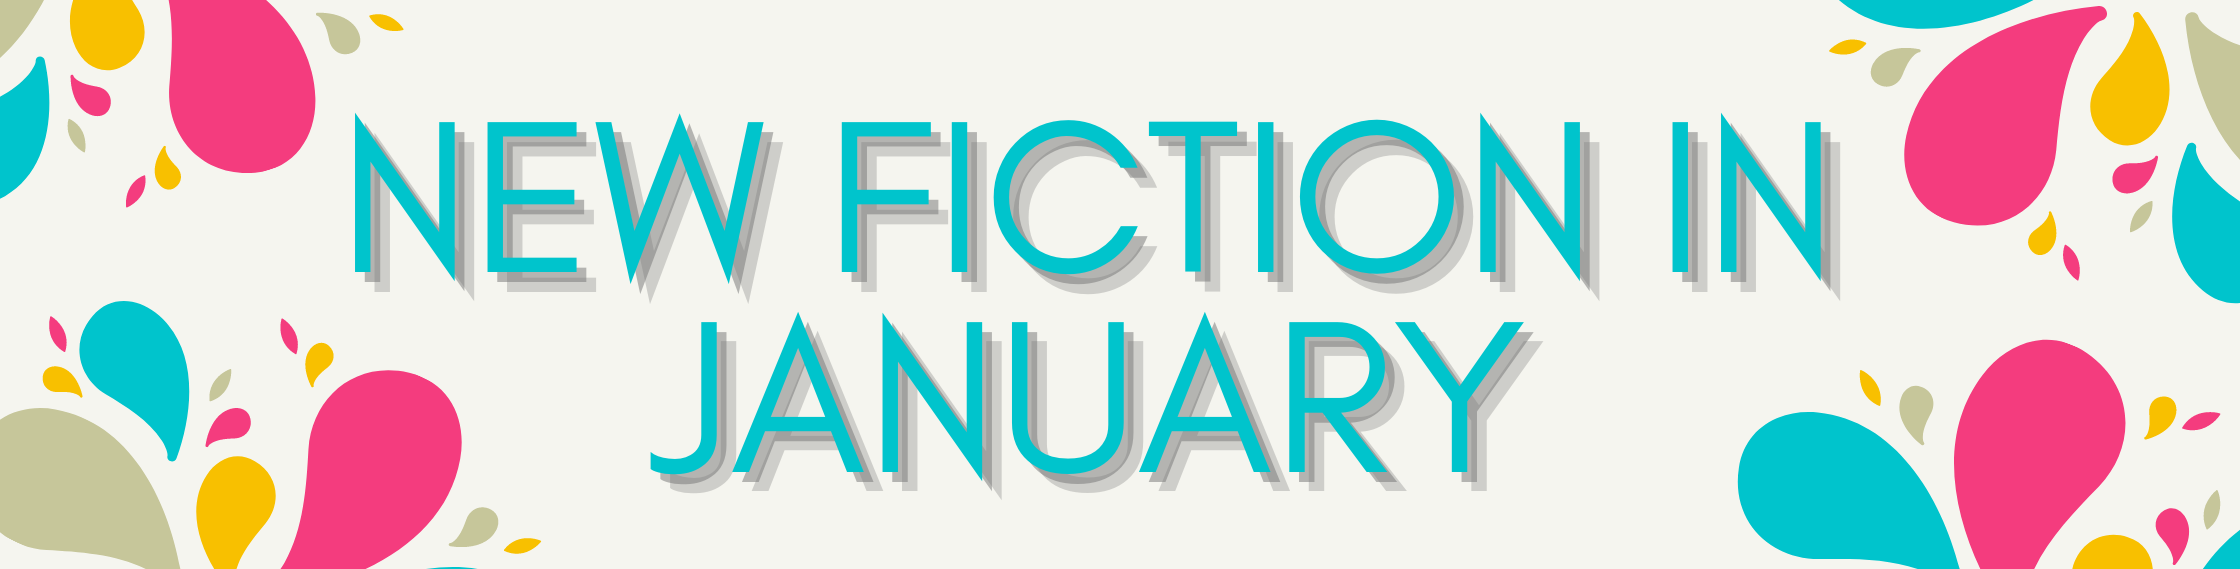 New Fiction in January